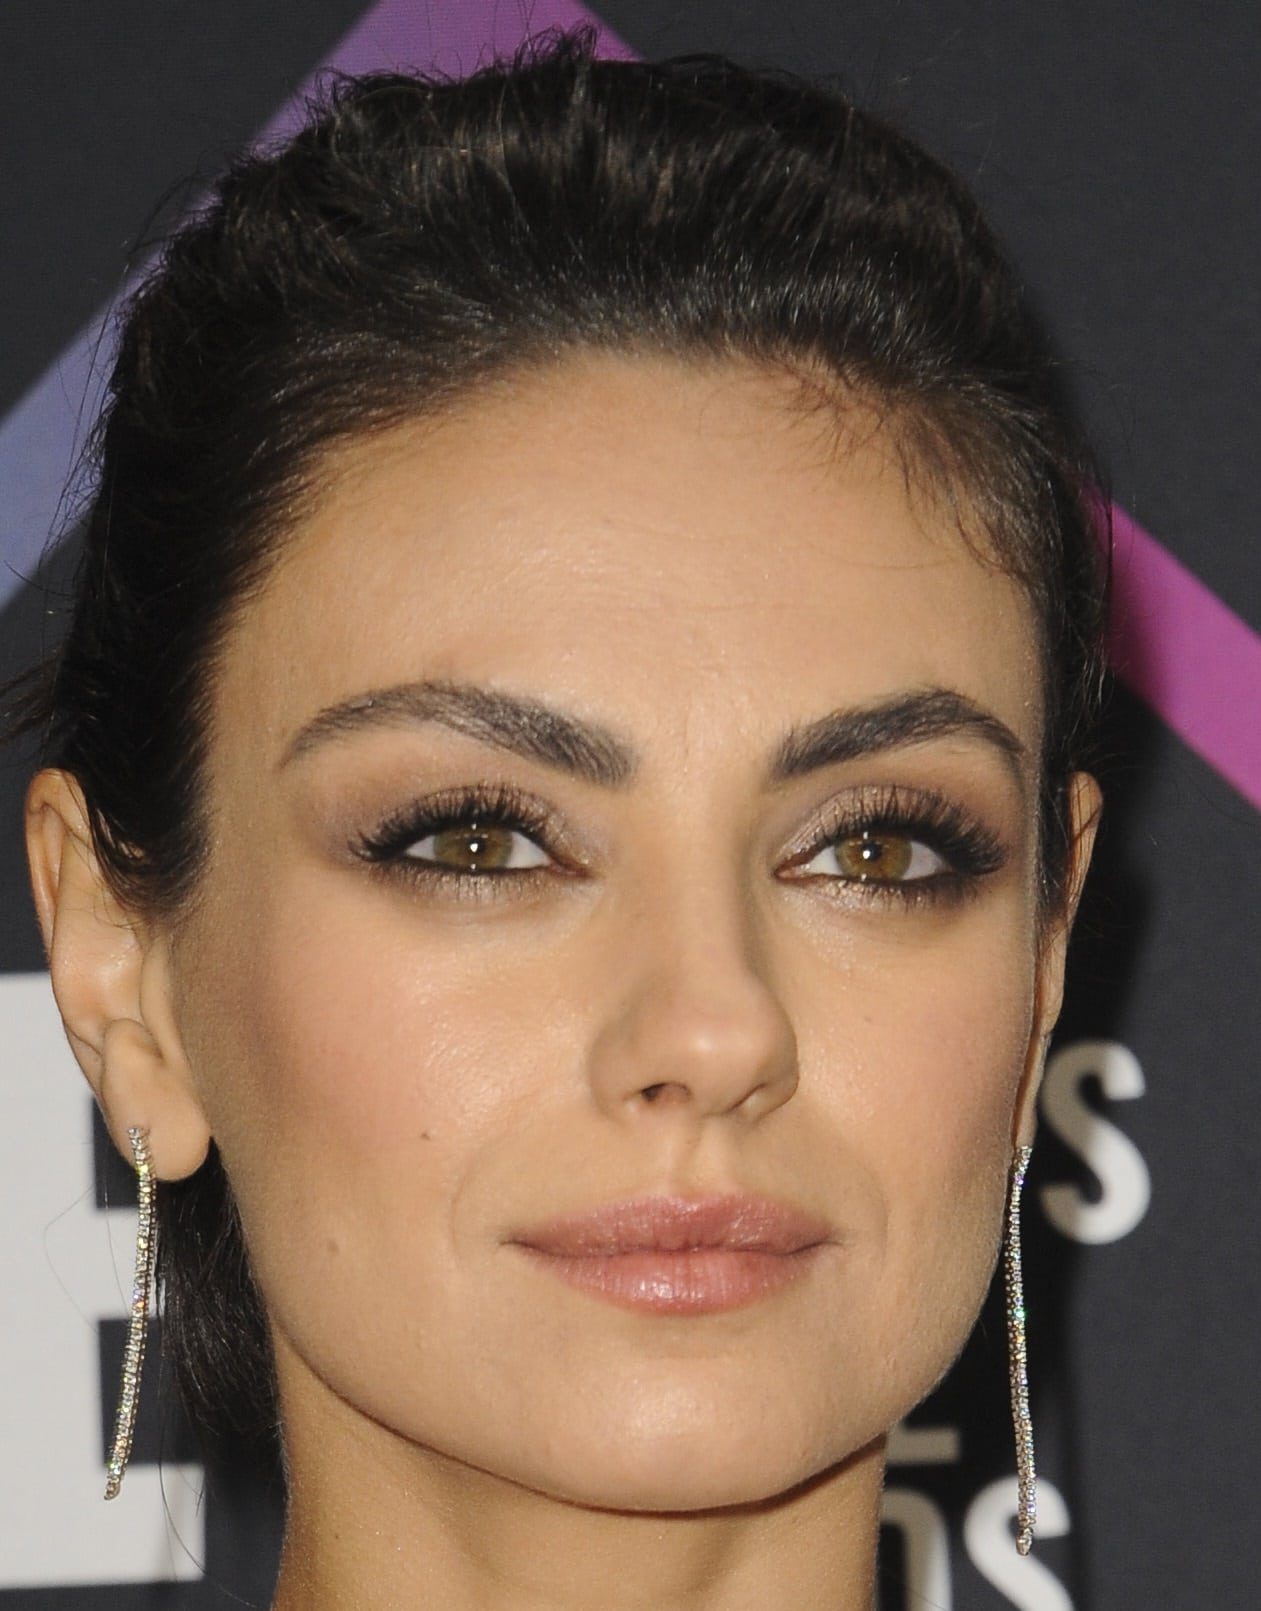 Mila Kunis has two different eye colors due to heterochromia